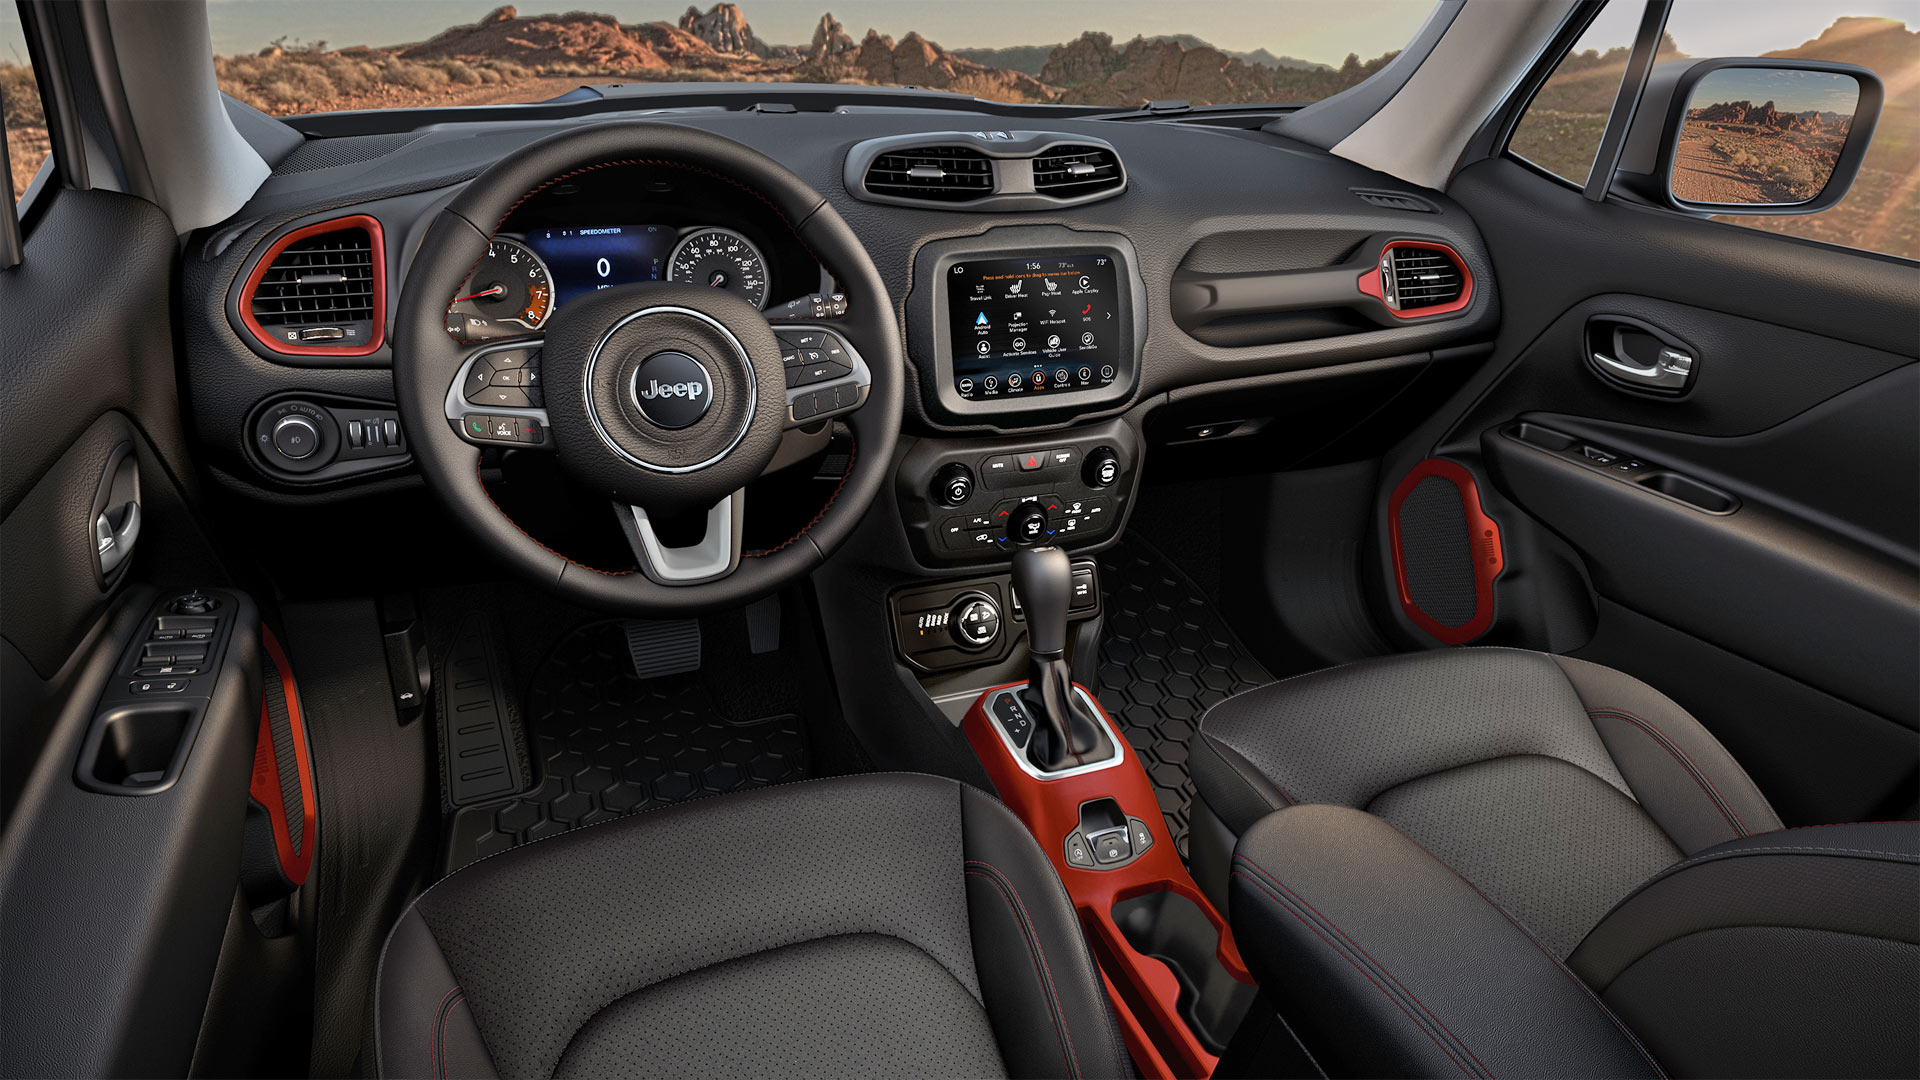 Jeep renegade gets a new engine for 2019 model year - Jeep renegade trailhawk interior ...